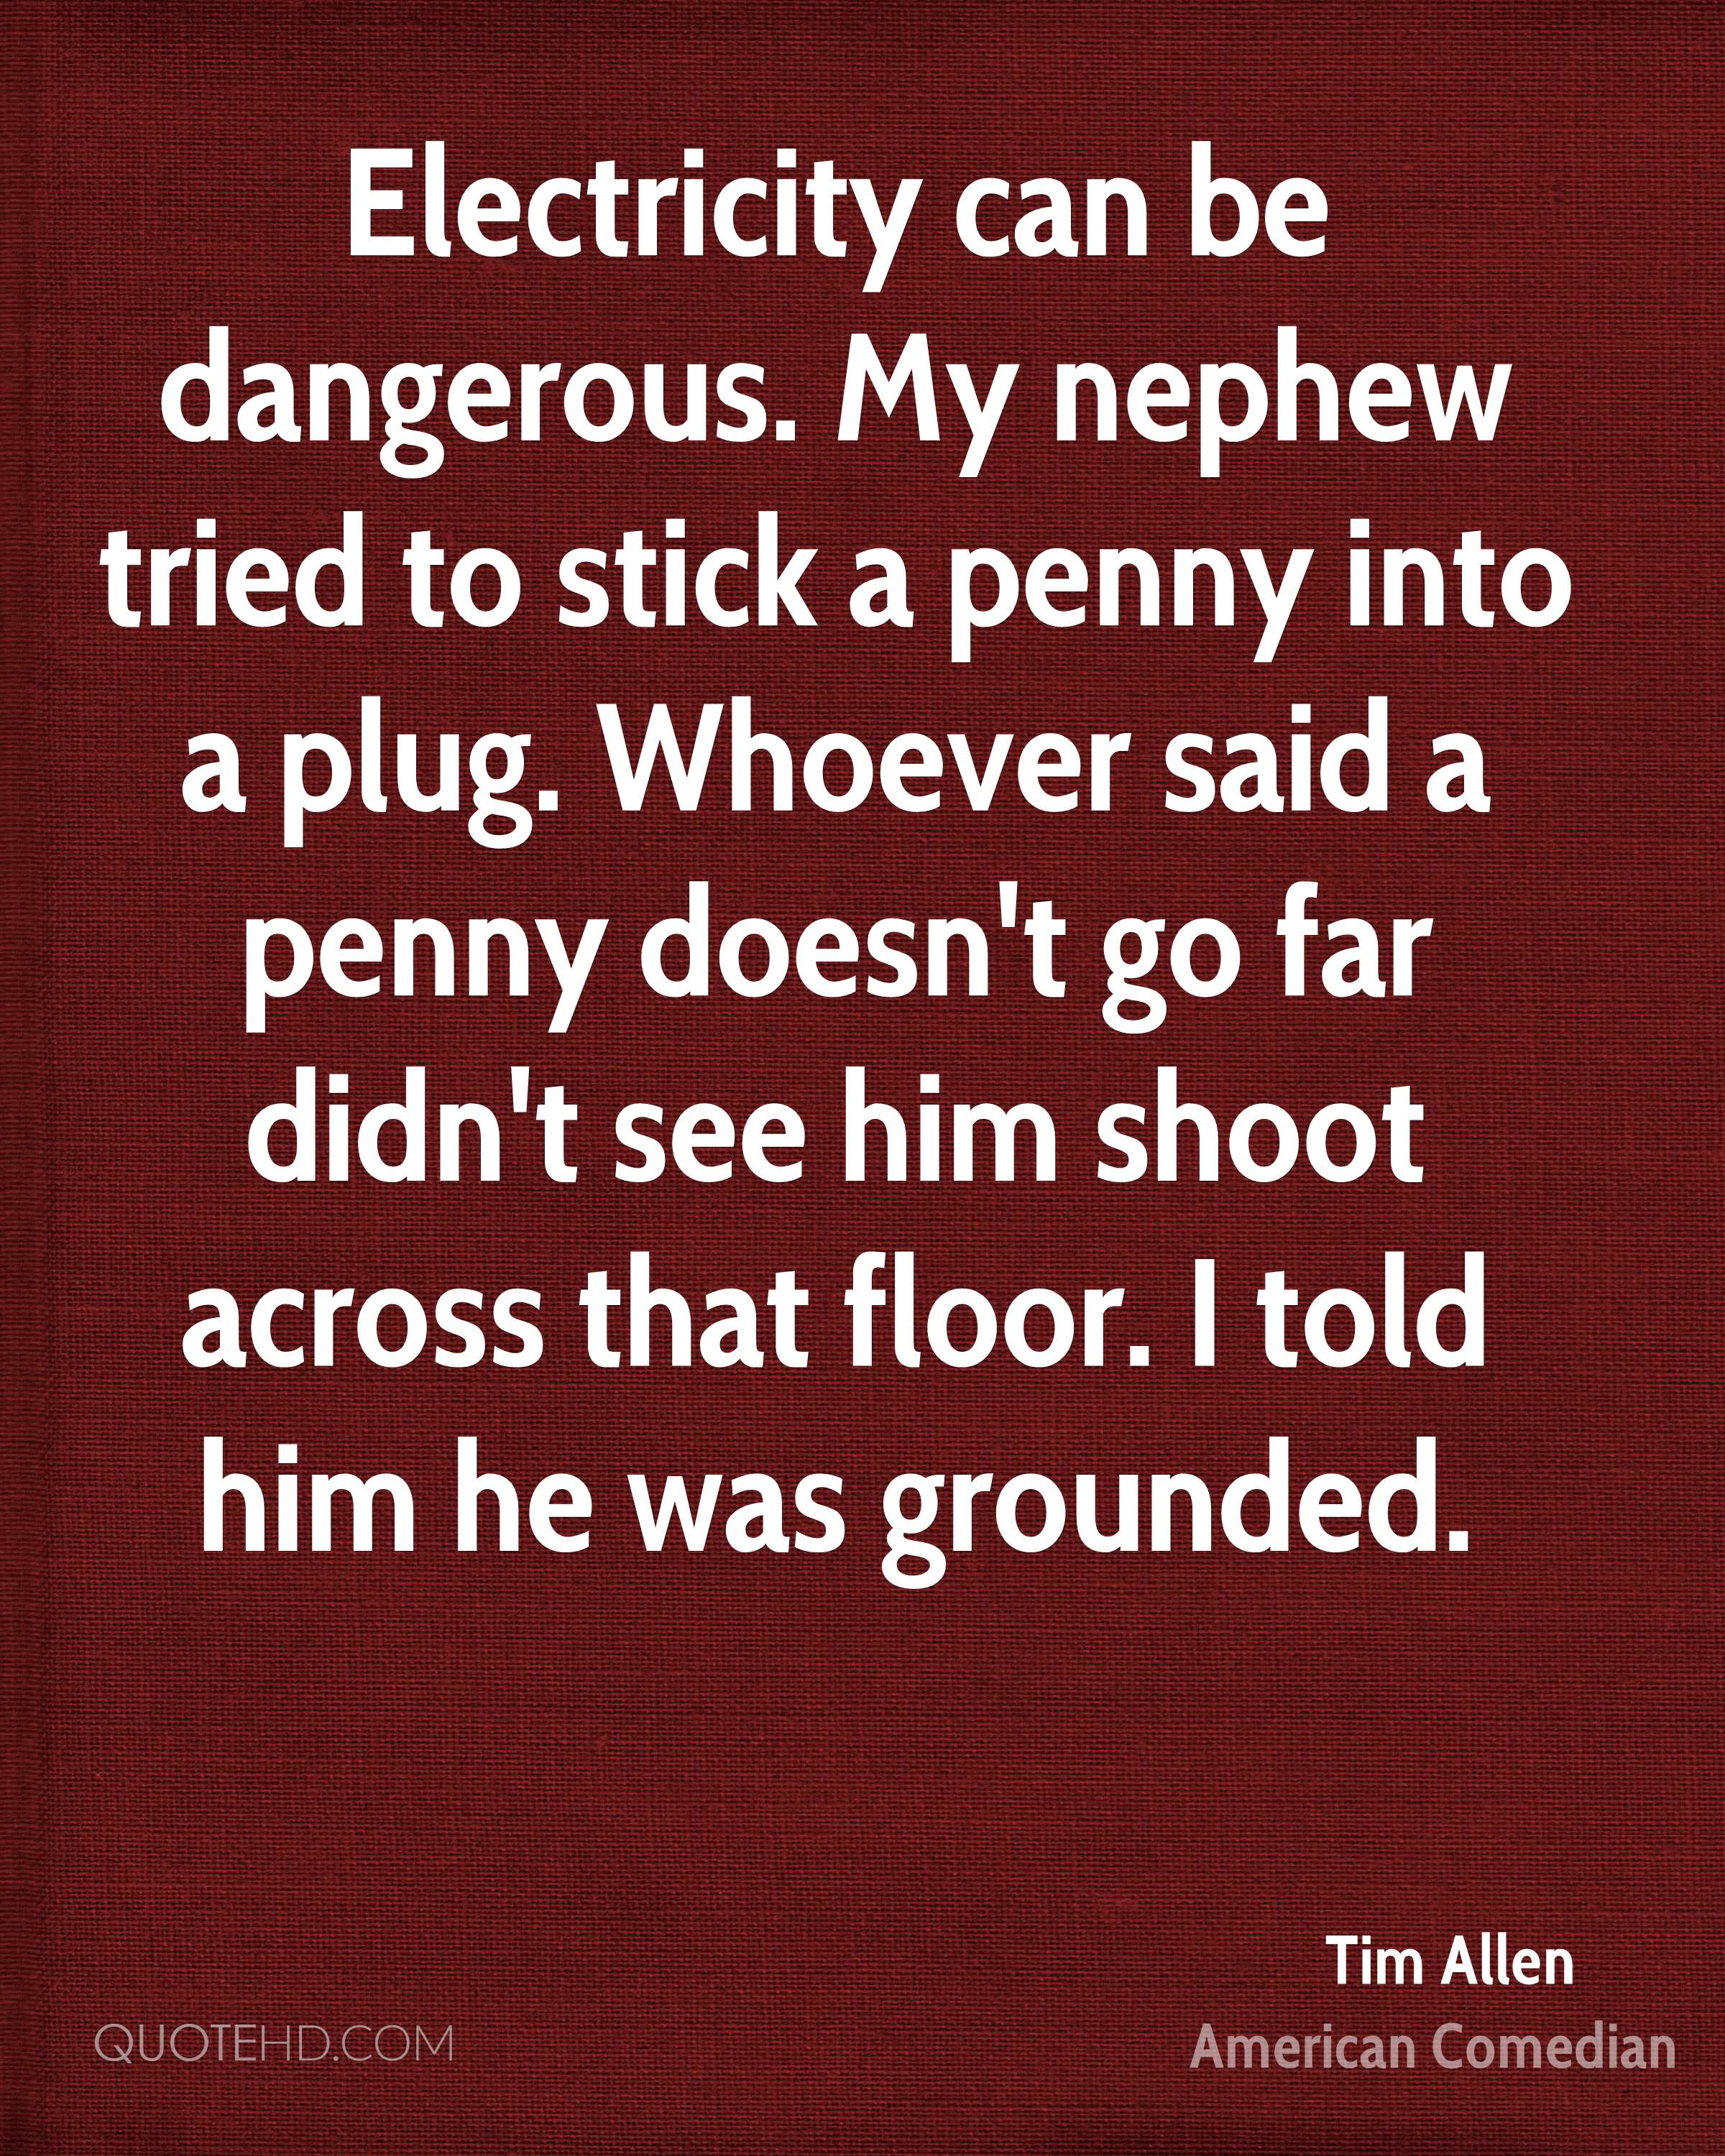 Electricity can be dangerous. My nephew tried to stick a penny into a plug. Whoever said a penny doesn't go far didn't see him shoot across that floor. I told him he was grounded.